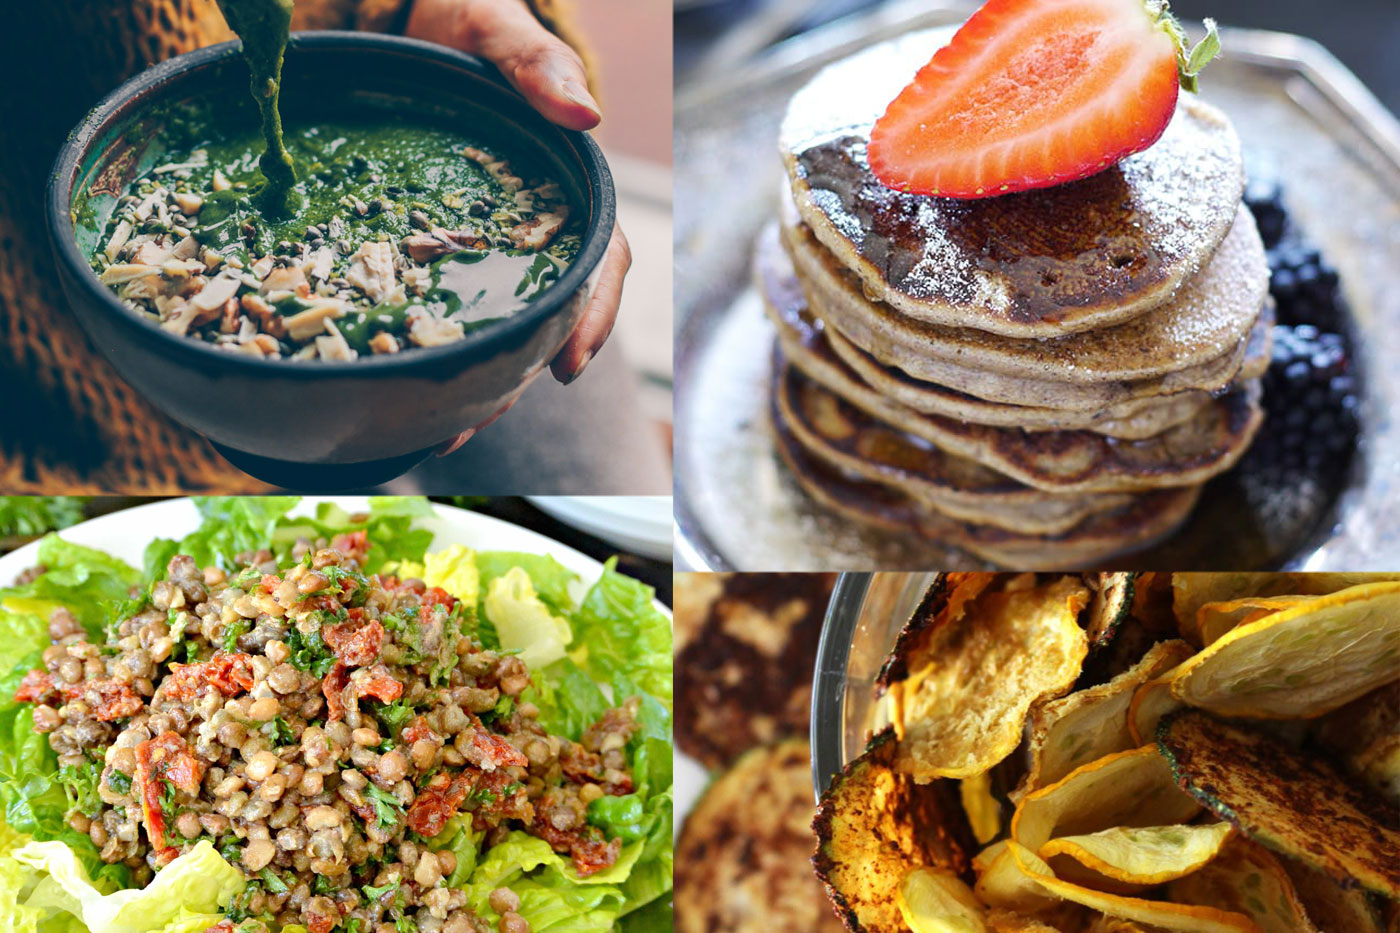 We curated 40 delicious, healthy plant based recipes for you.